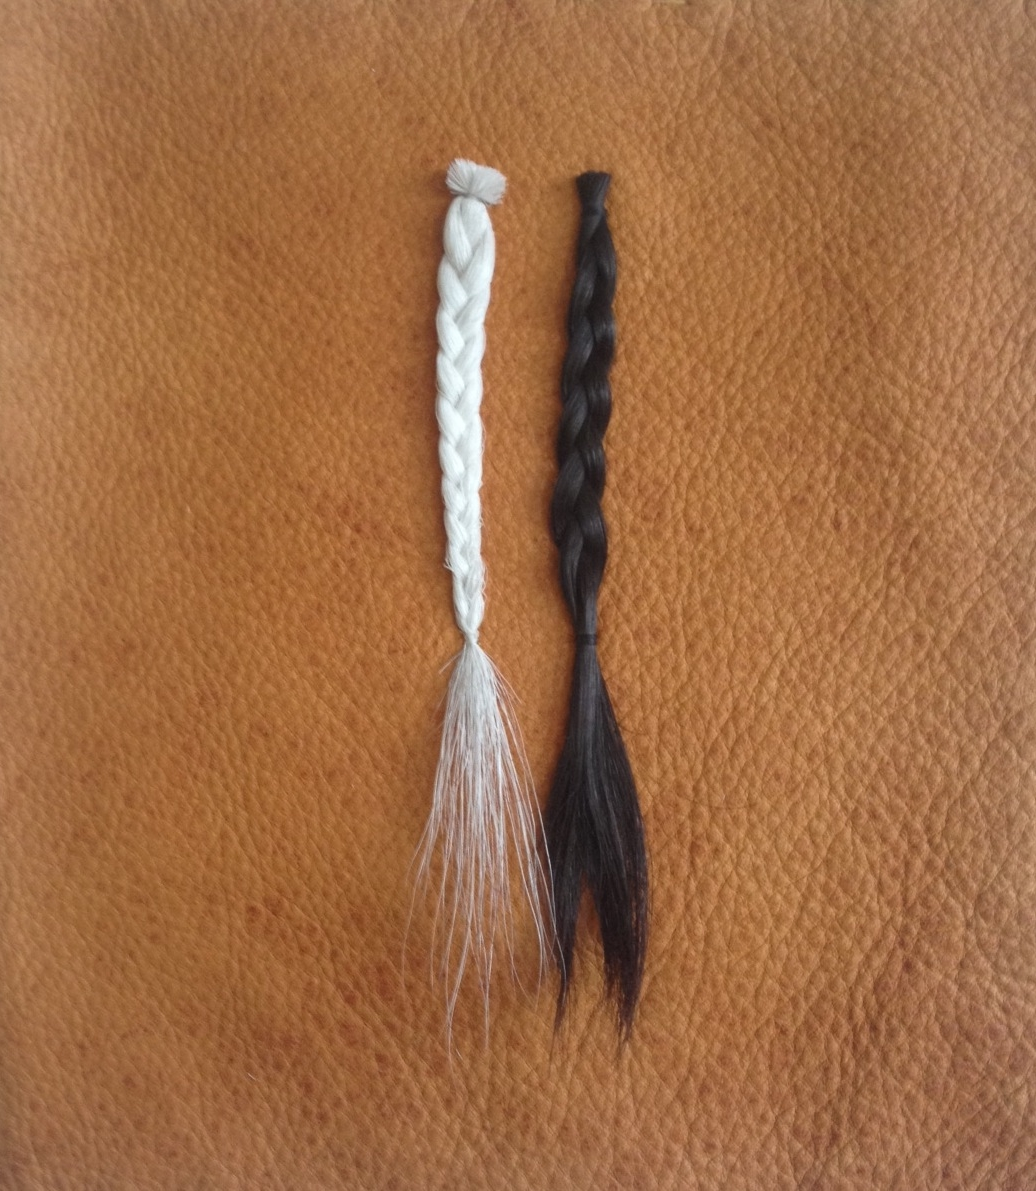 """iamthecaribou/thecaribouisme, 2014, caribou hair andthe artist's hair on elk hide, 8"""" x 9""""."""